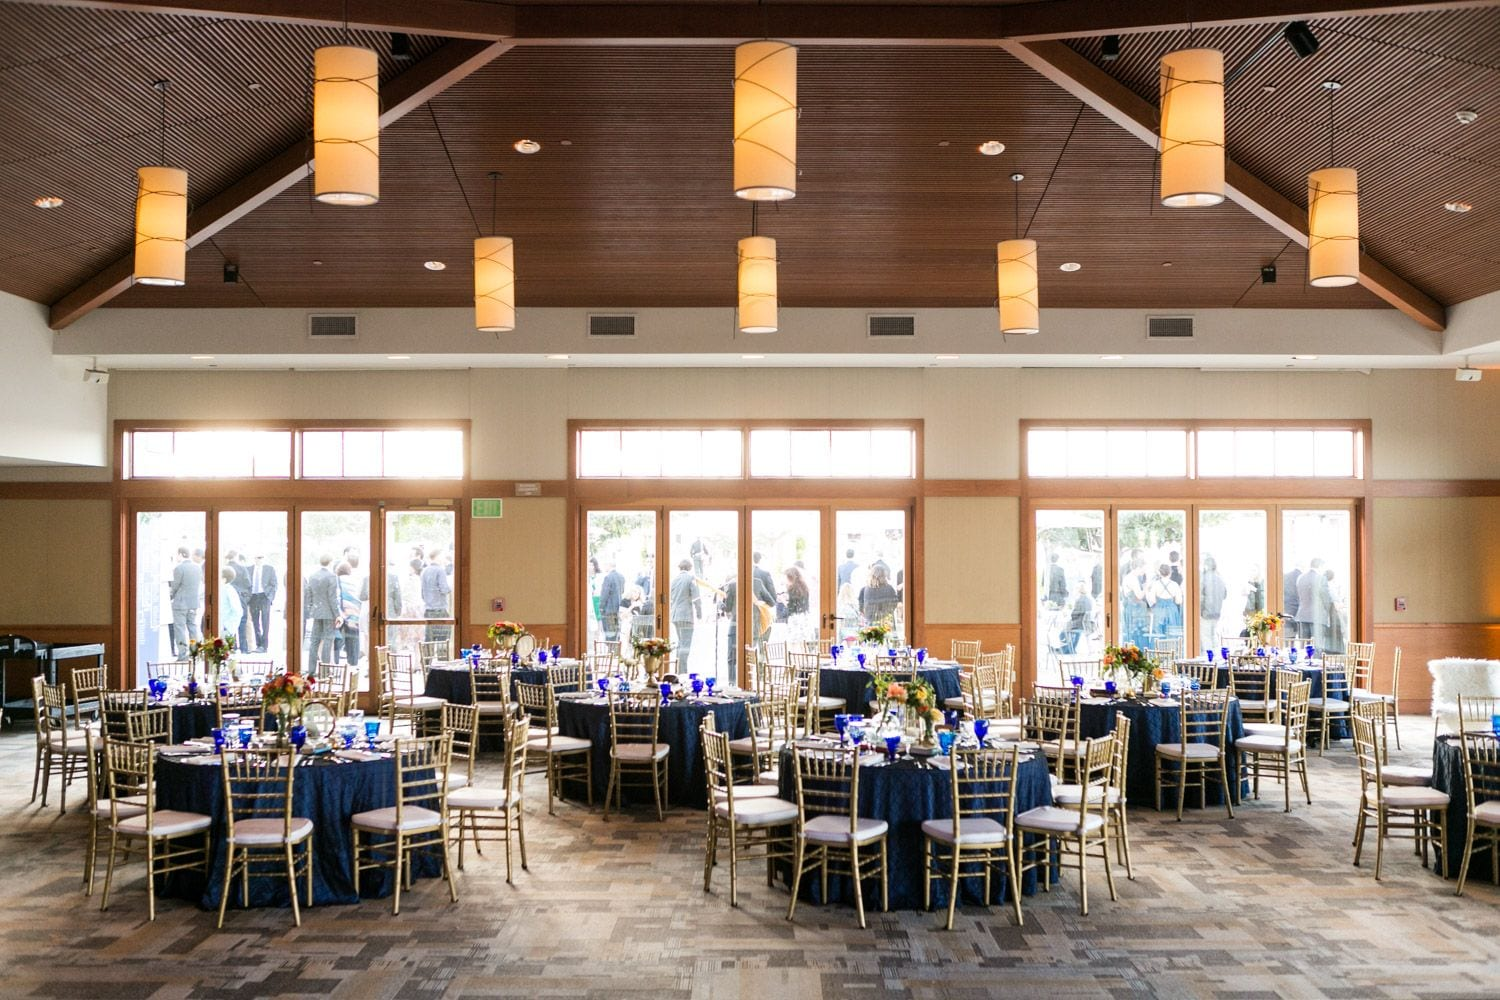 cater weddings and events at coronado community center - view our venue partnerships   snake oil cocktail co.